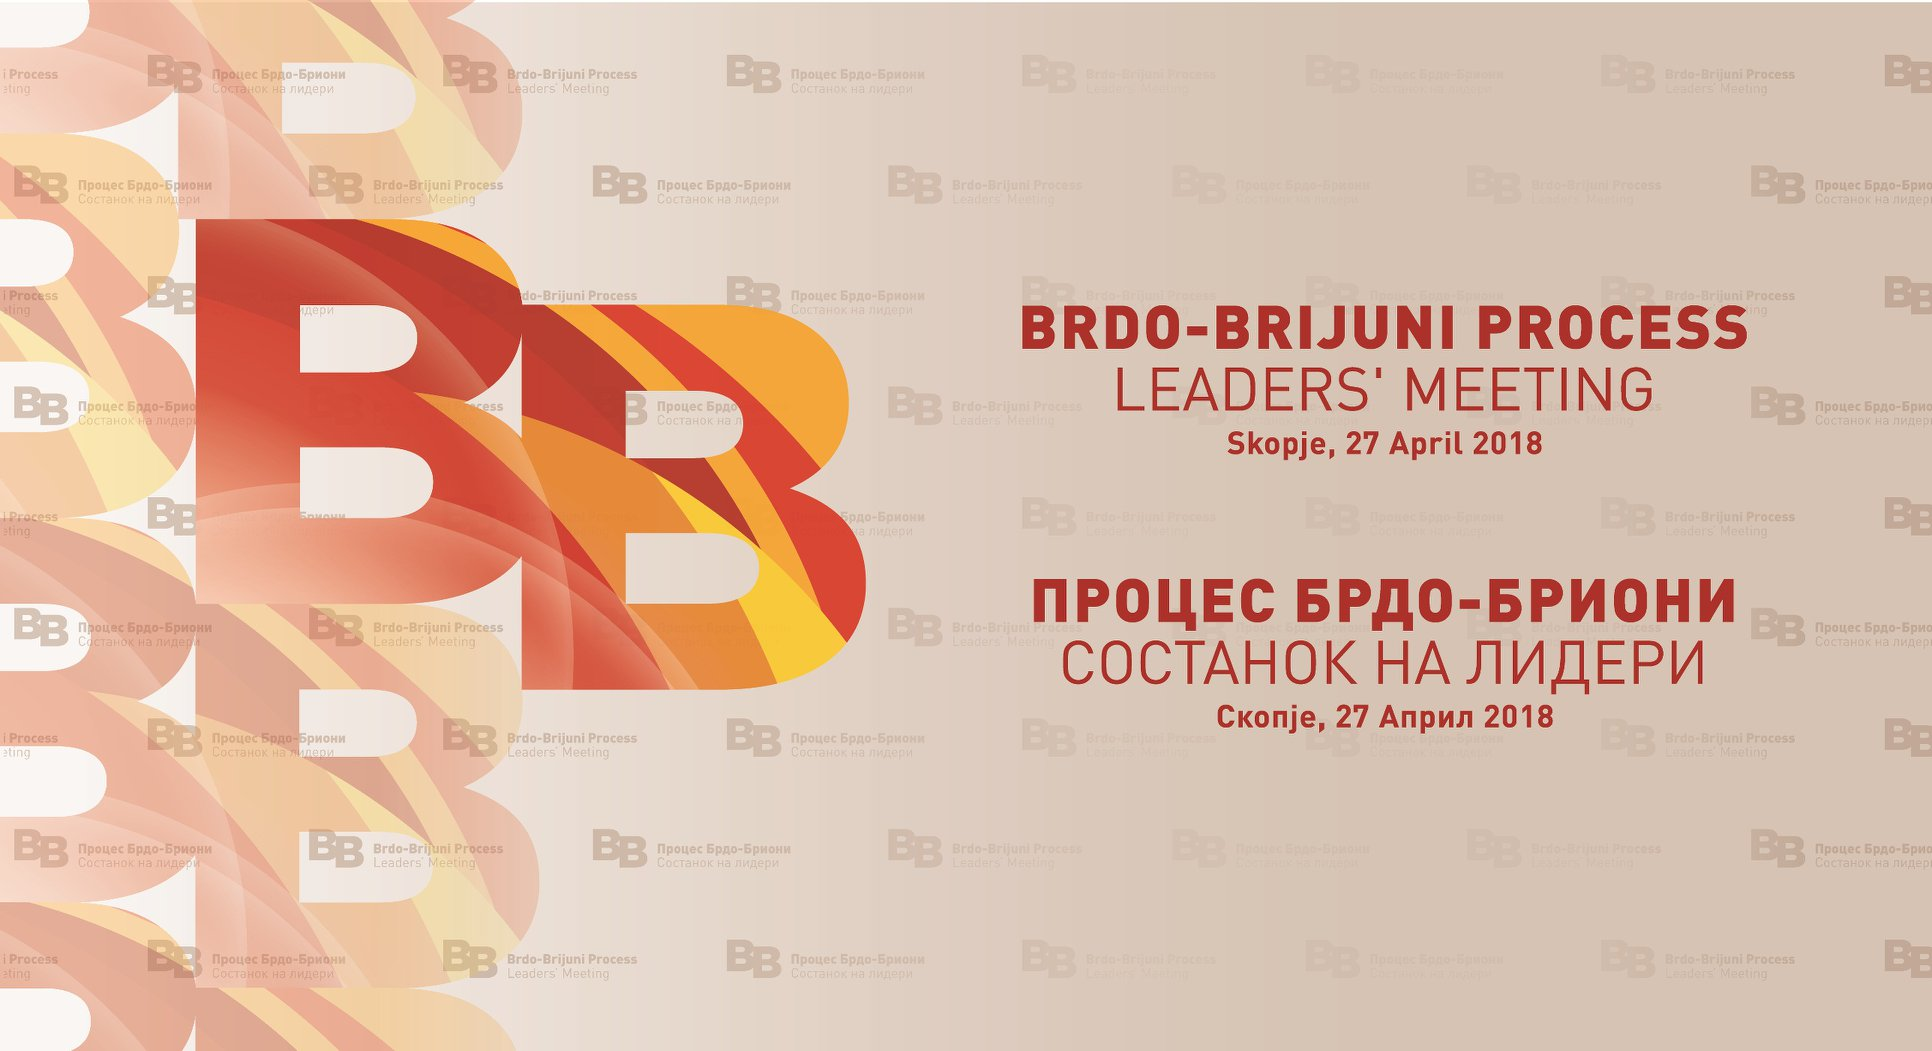 Presidents of the Brdo-Brioni process and Tusk in Skopje today